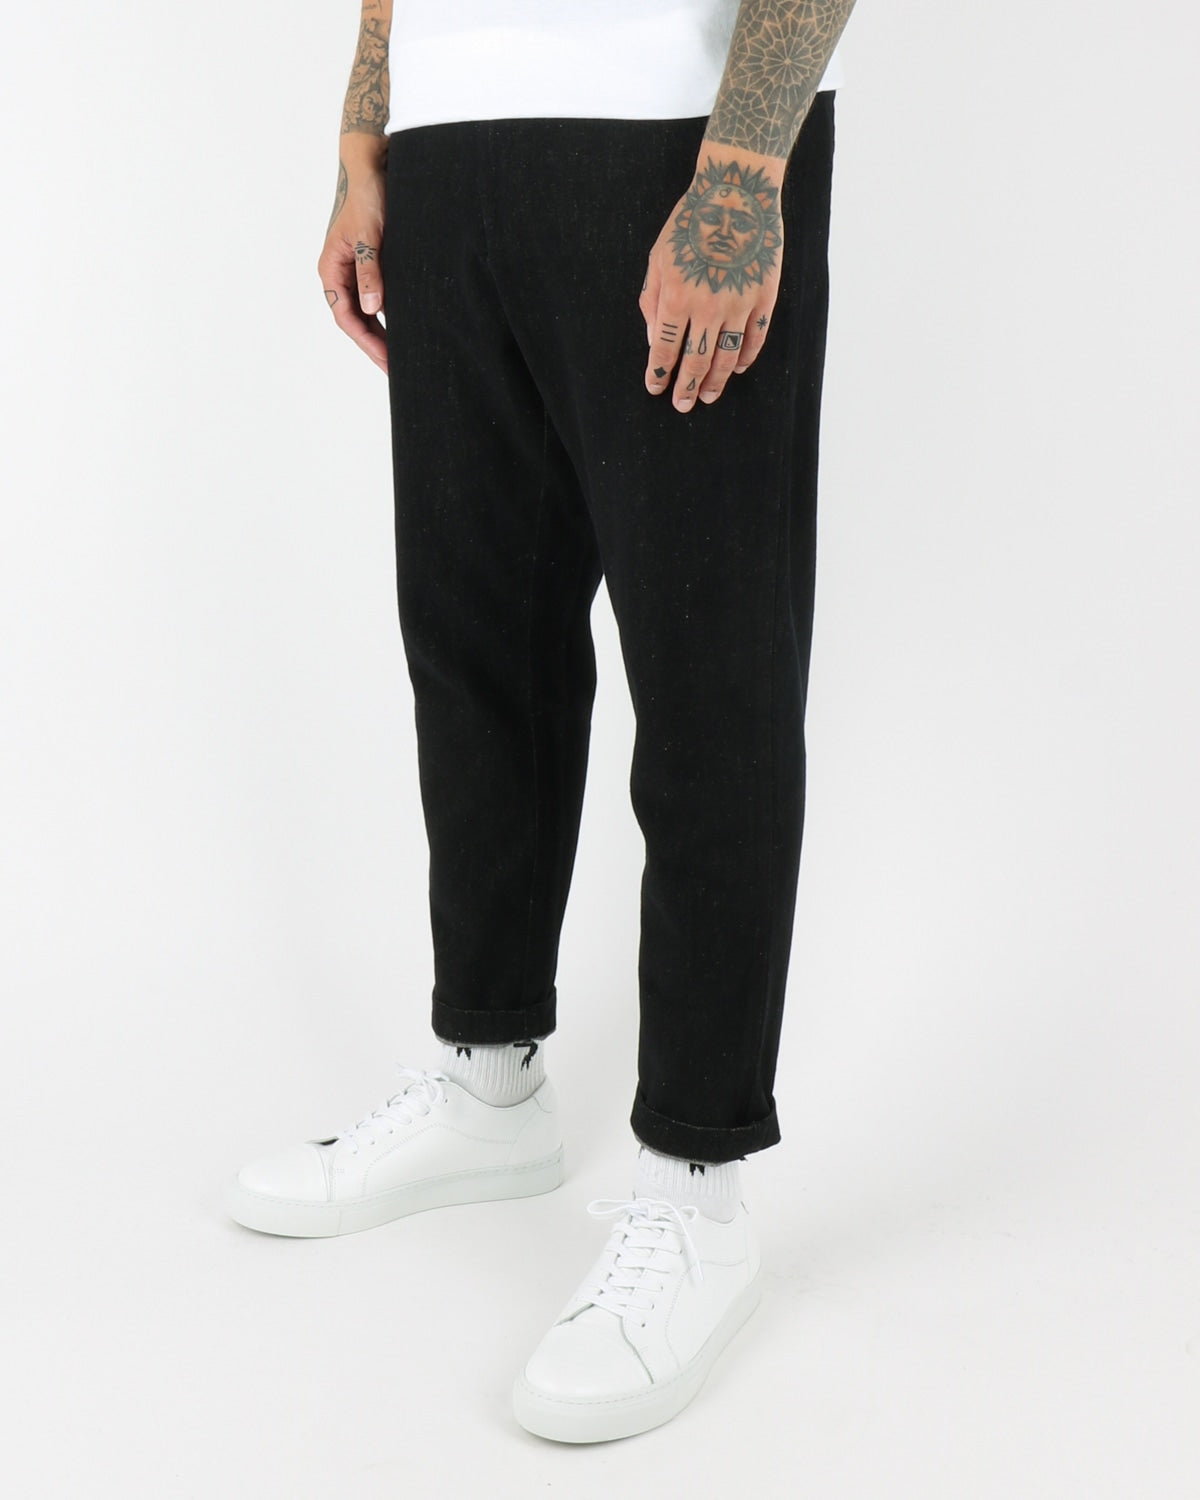 journal clothing_sea brushed pants_black_view_1_3